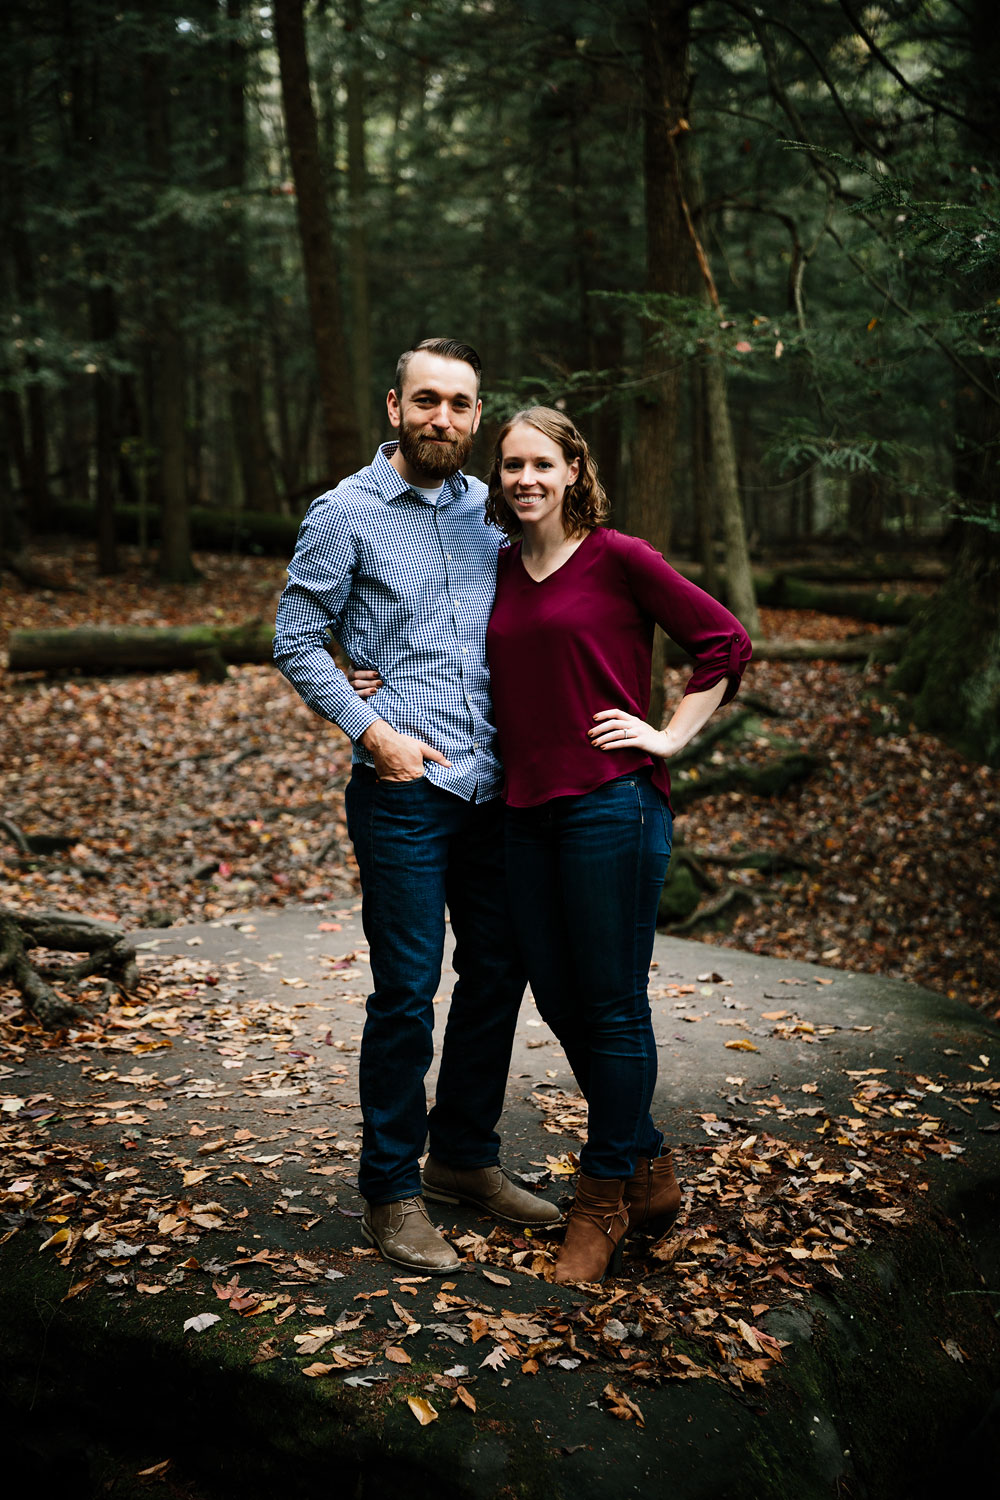 cuyahoga-valley-national-park-engagement-photography-peninsula-ohio-37.jpg